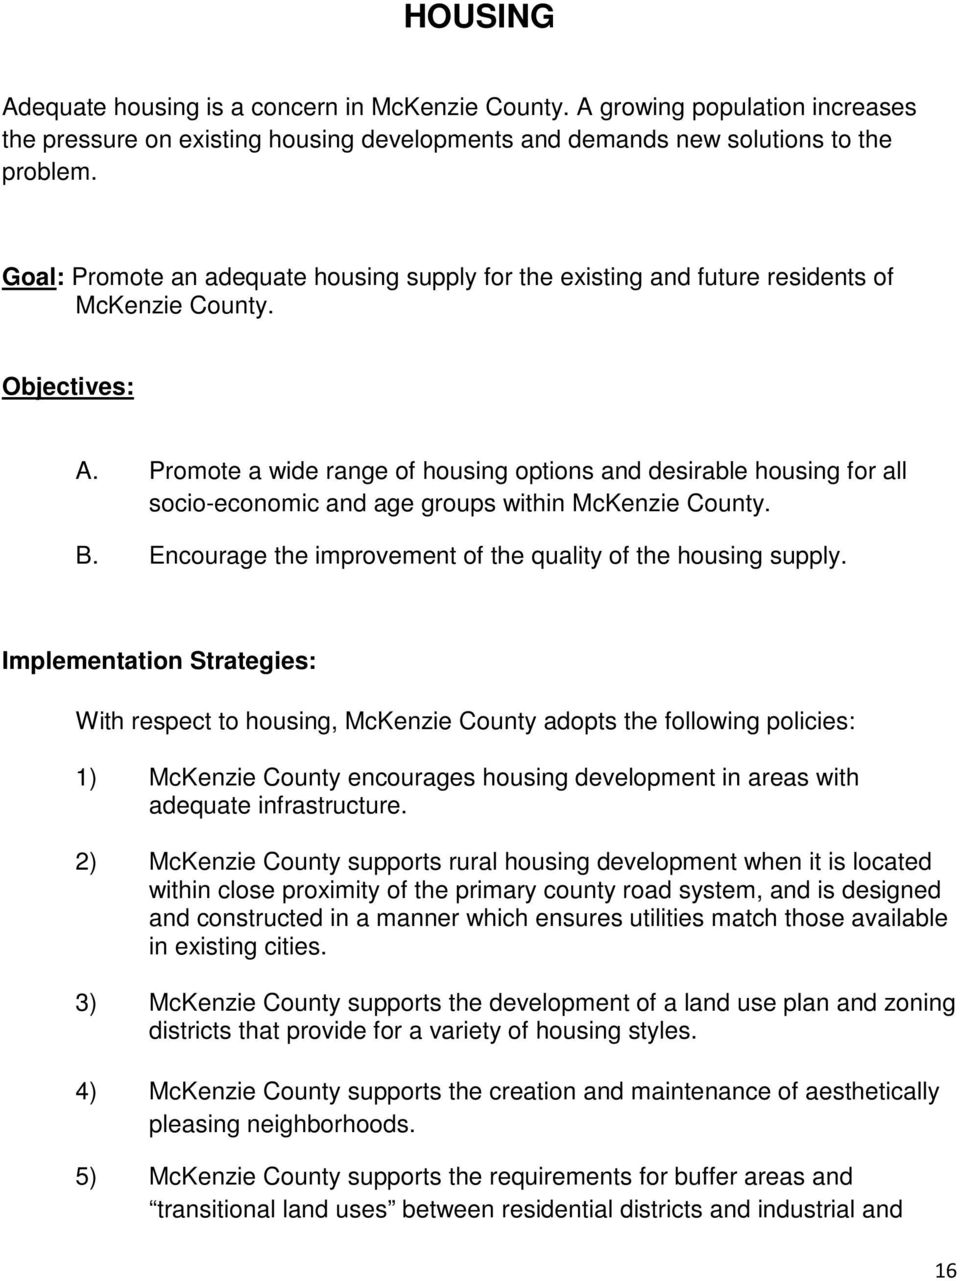 Promote a wide range of housing options and desirable housing for all socio-economic and age groups within McKenzie County. B. Encourage the improvement of the quality of the housing supply.